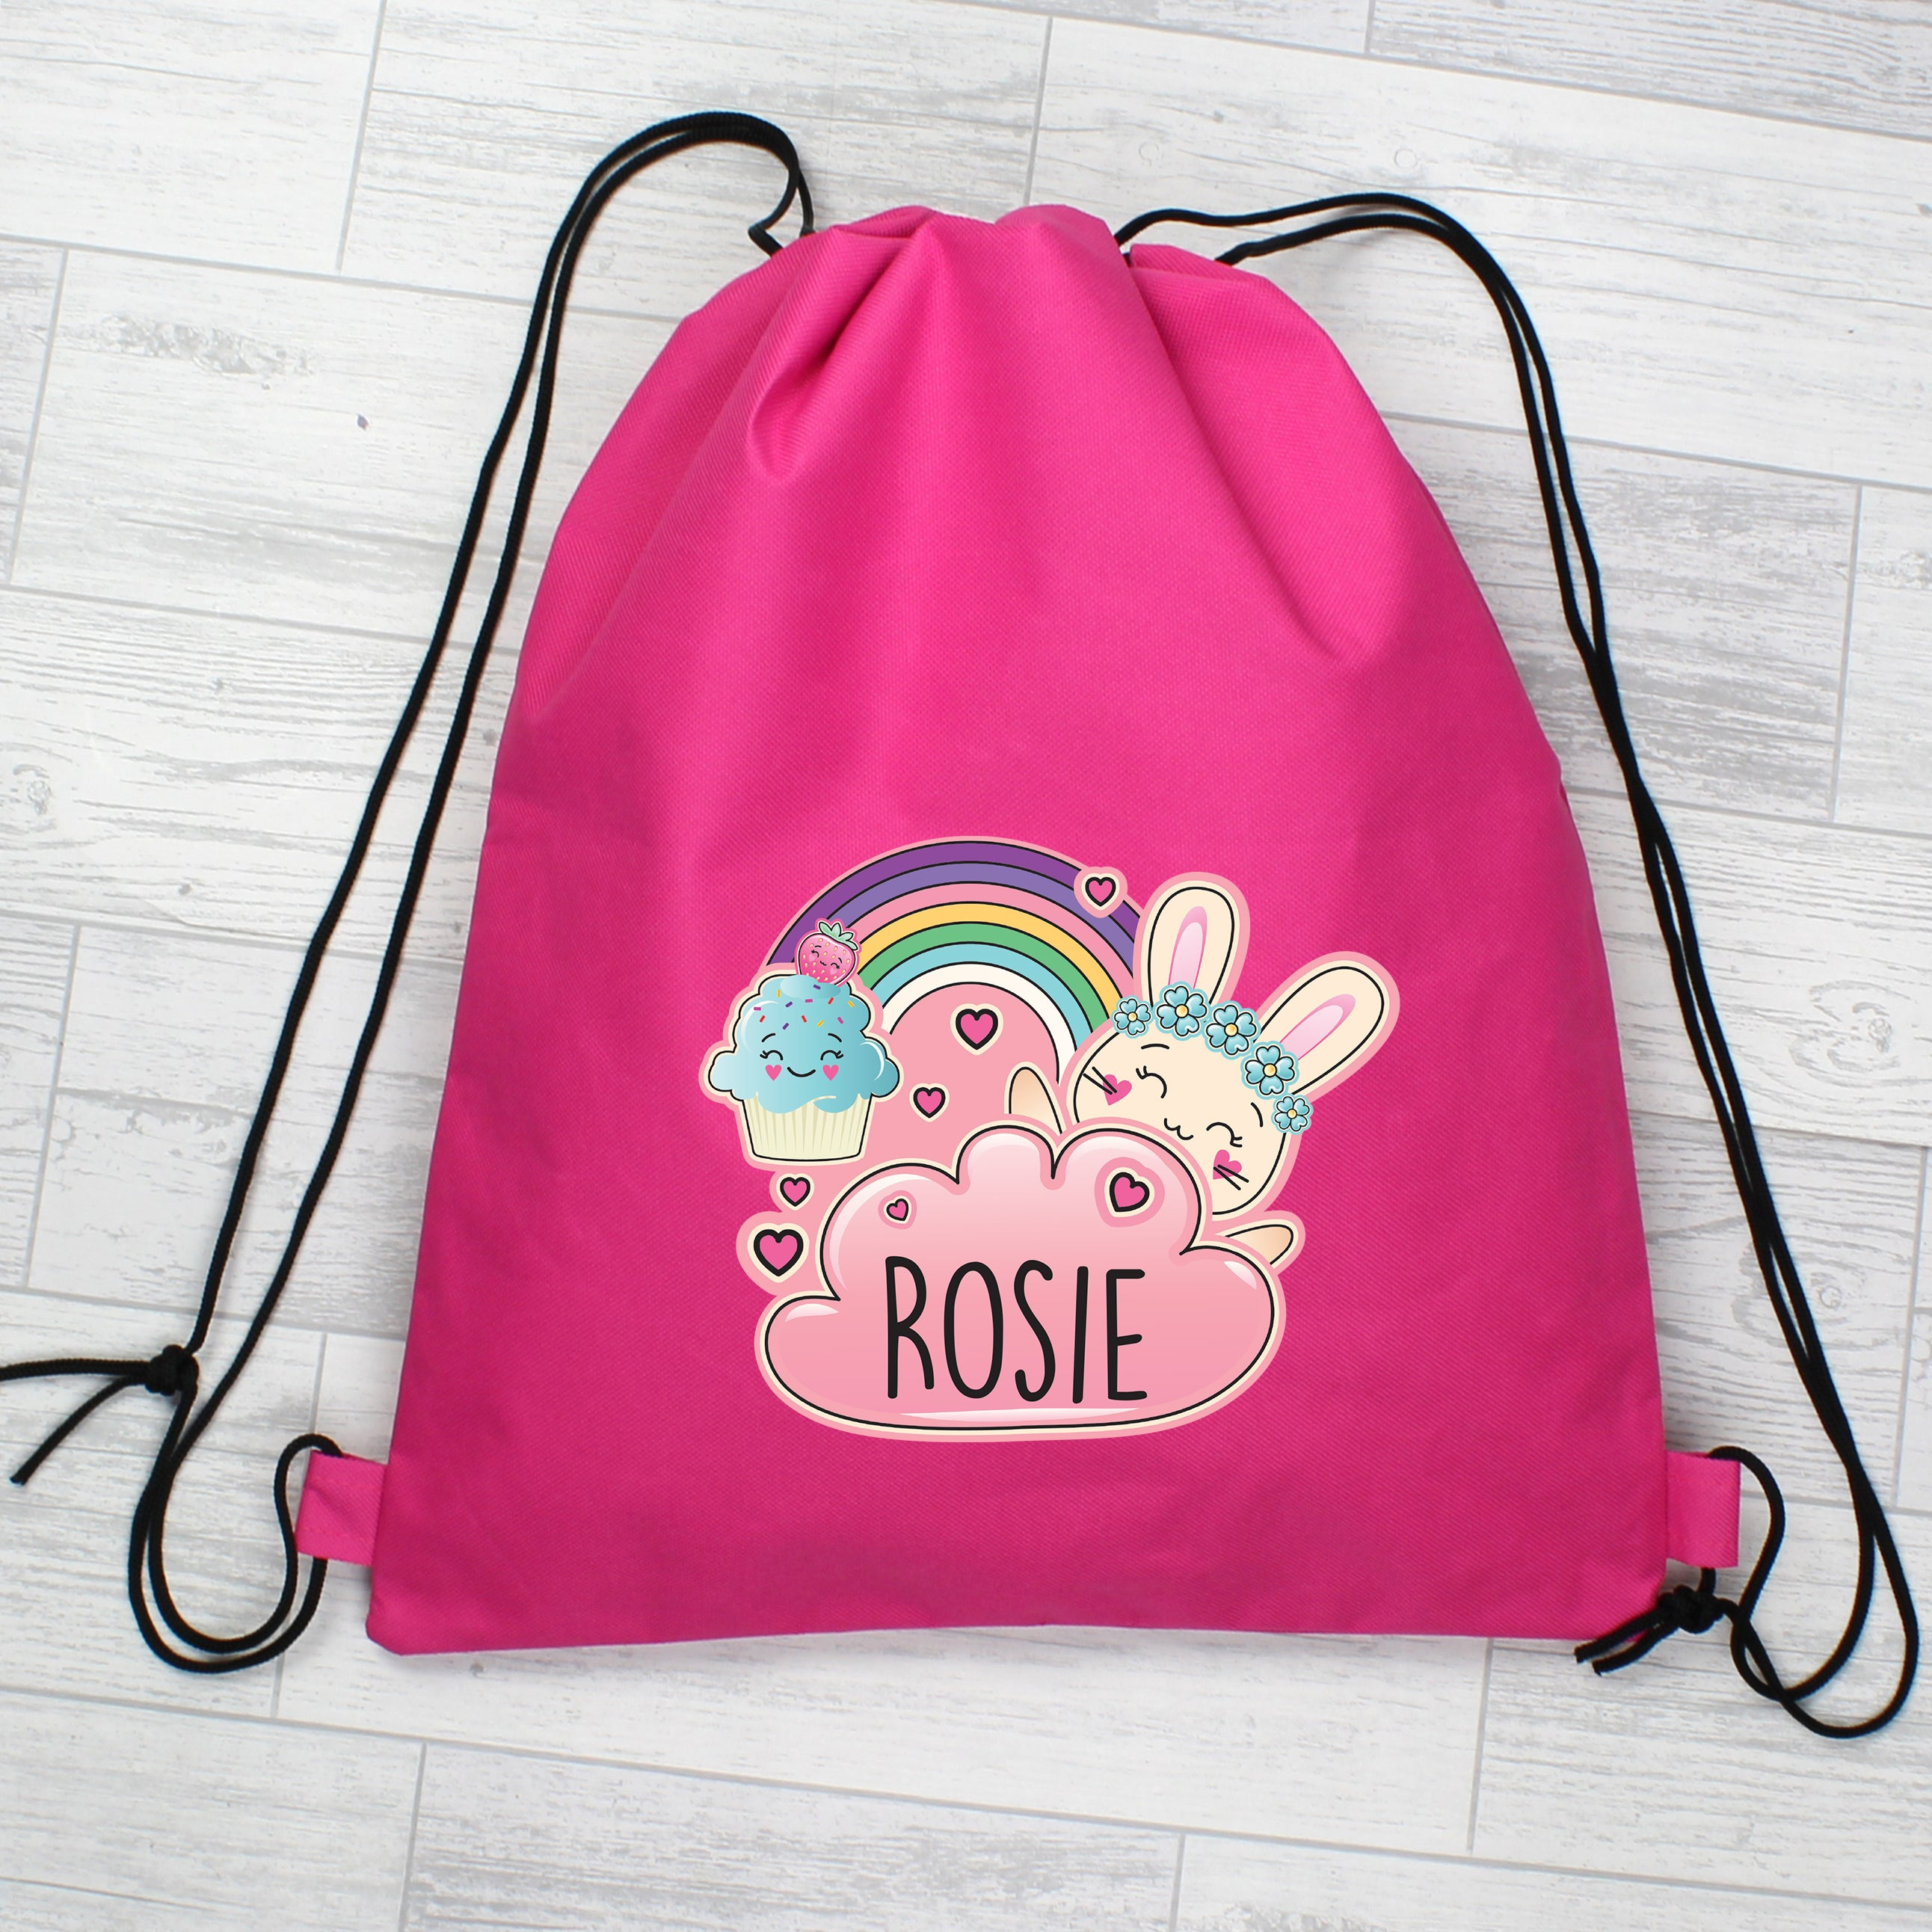 Personalised Cute Bunny Pink Swim & Kit Bag, Luggage & Bags by Gifts24-7